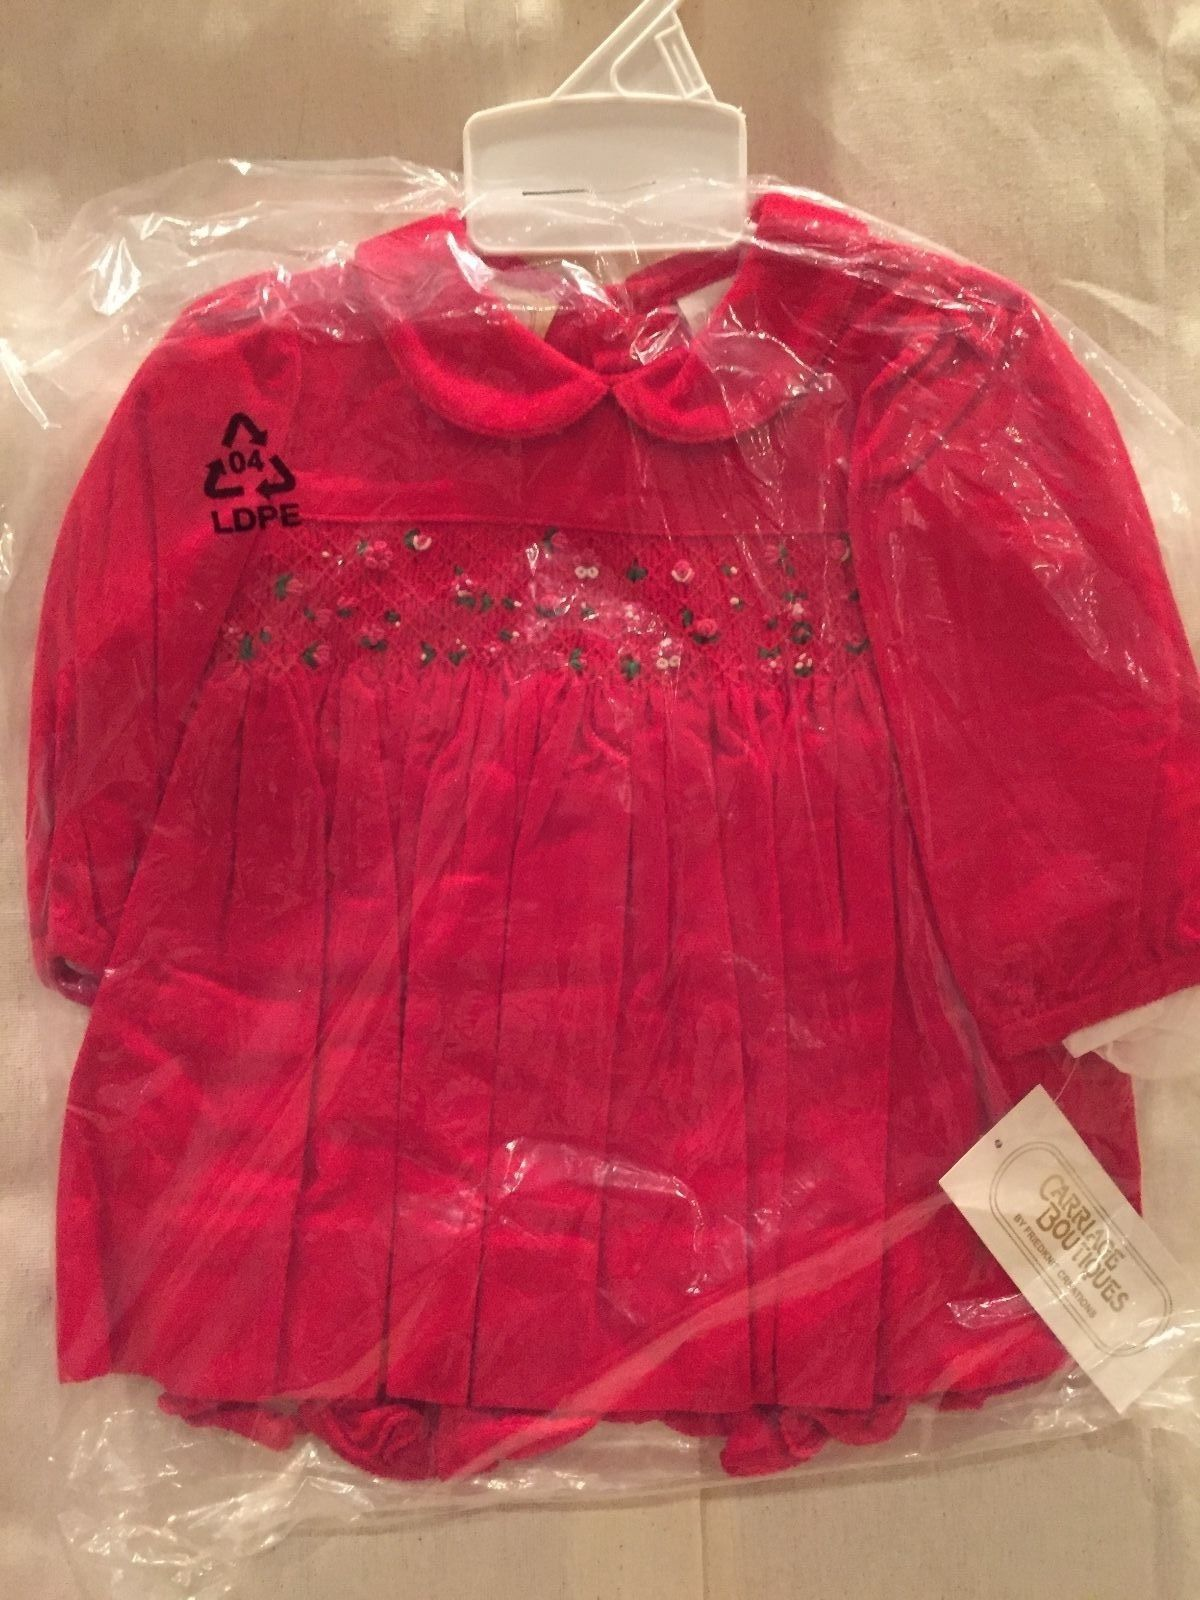 Image 0 of Gorgeous Red Smocked Baby Girl Dress & Bloomers Set, Carriage Boutique - 6 Month